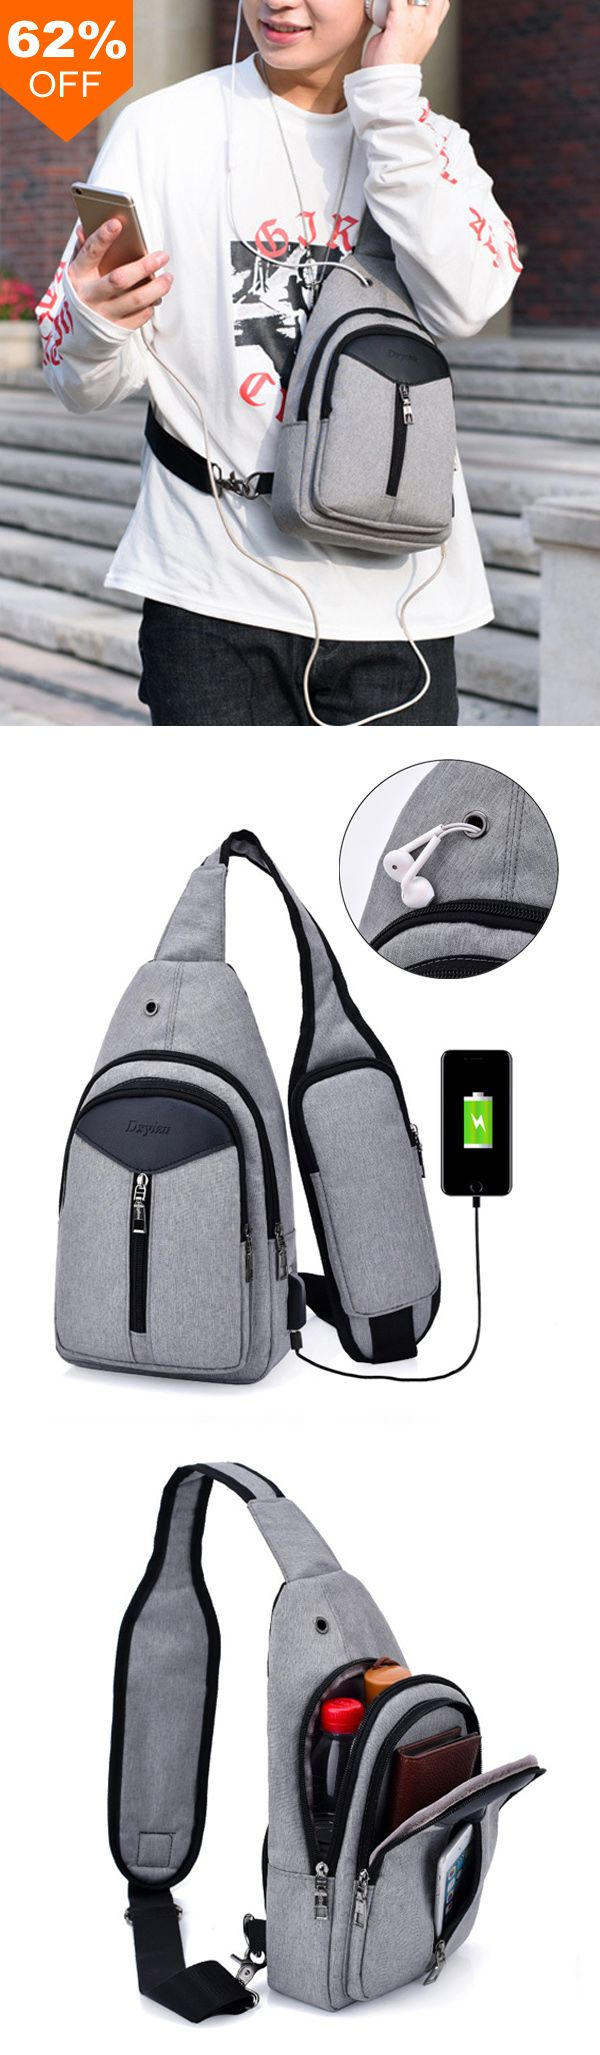 62%OFF&Free shipping. Crossbody Bag with USB Charging Port, Men Leisure Sling Bag Fashion Chest Bag. Make your life easier,shop now~